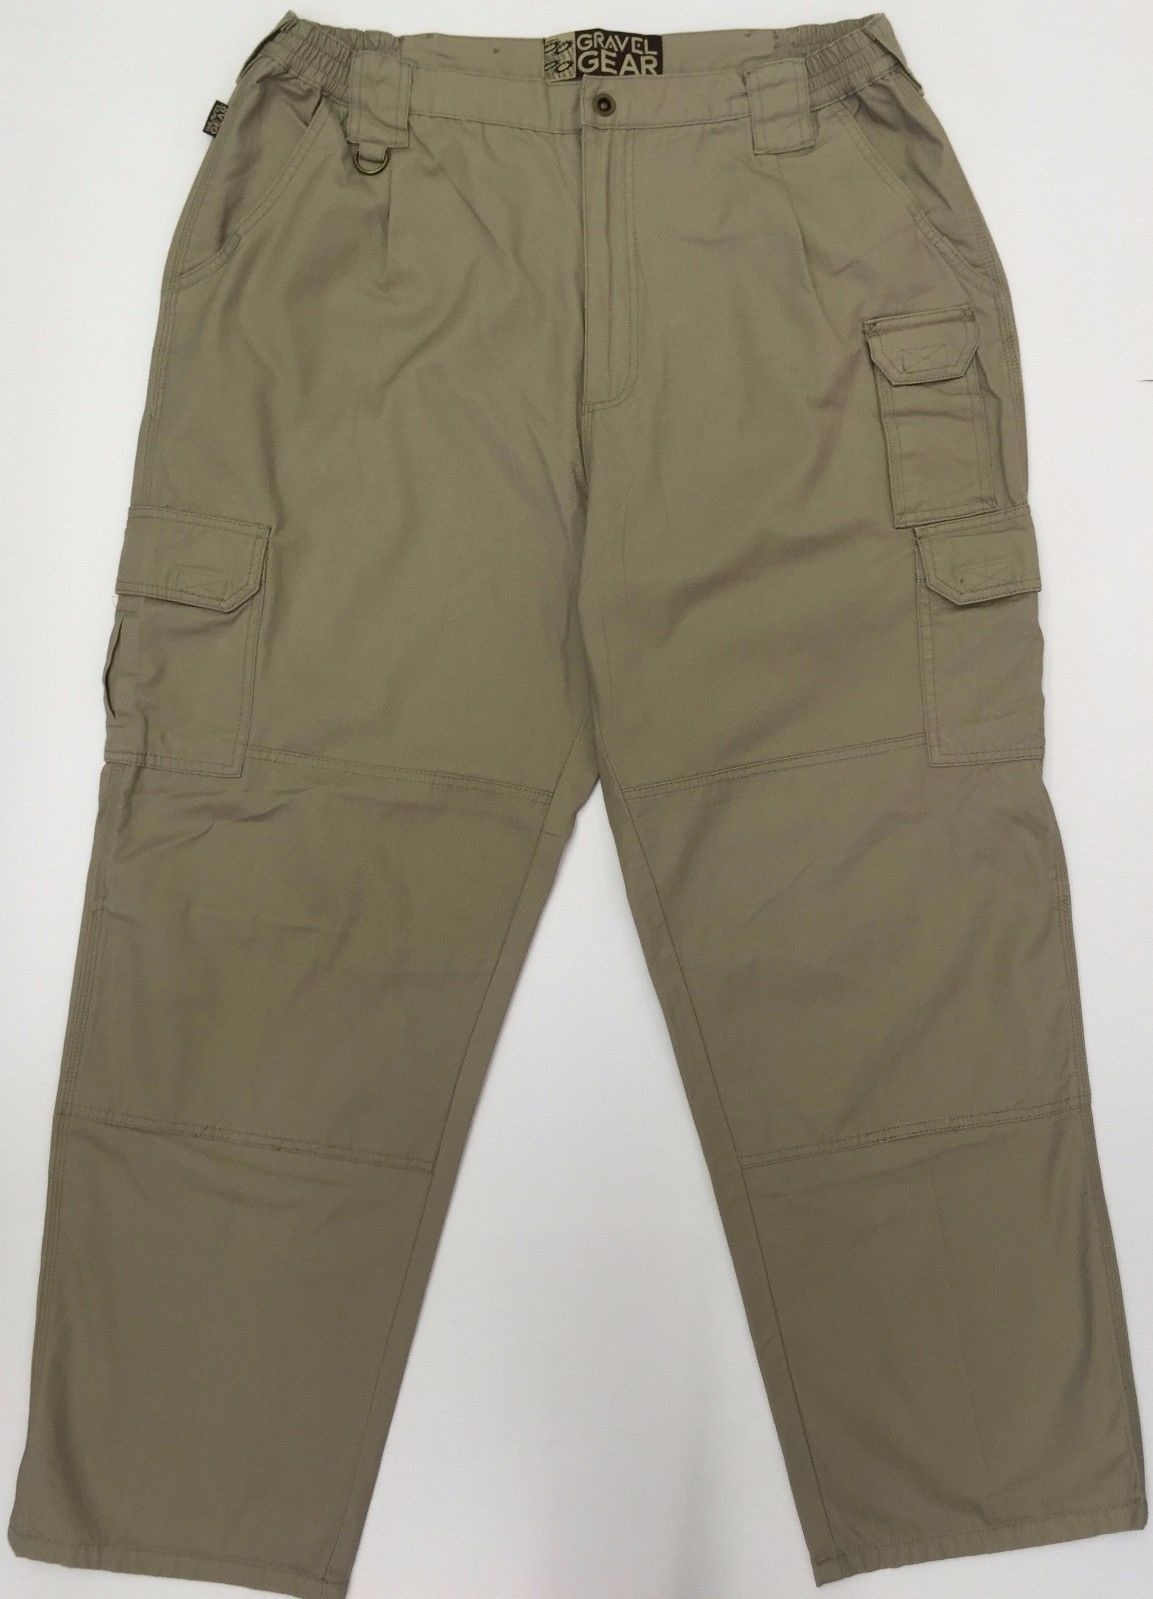 Gravel Gear 7-Pocket Tactical Pants with Teflon Khaki 100% Cotton Men 40X32 EUC